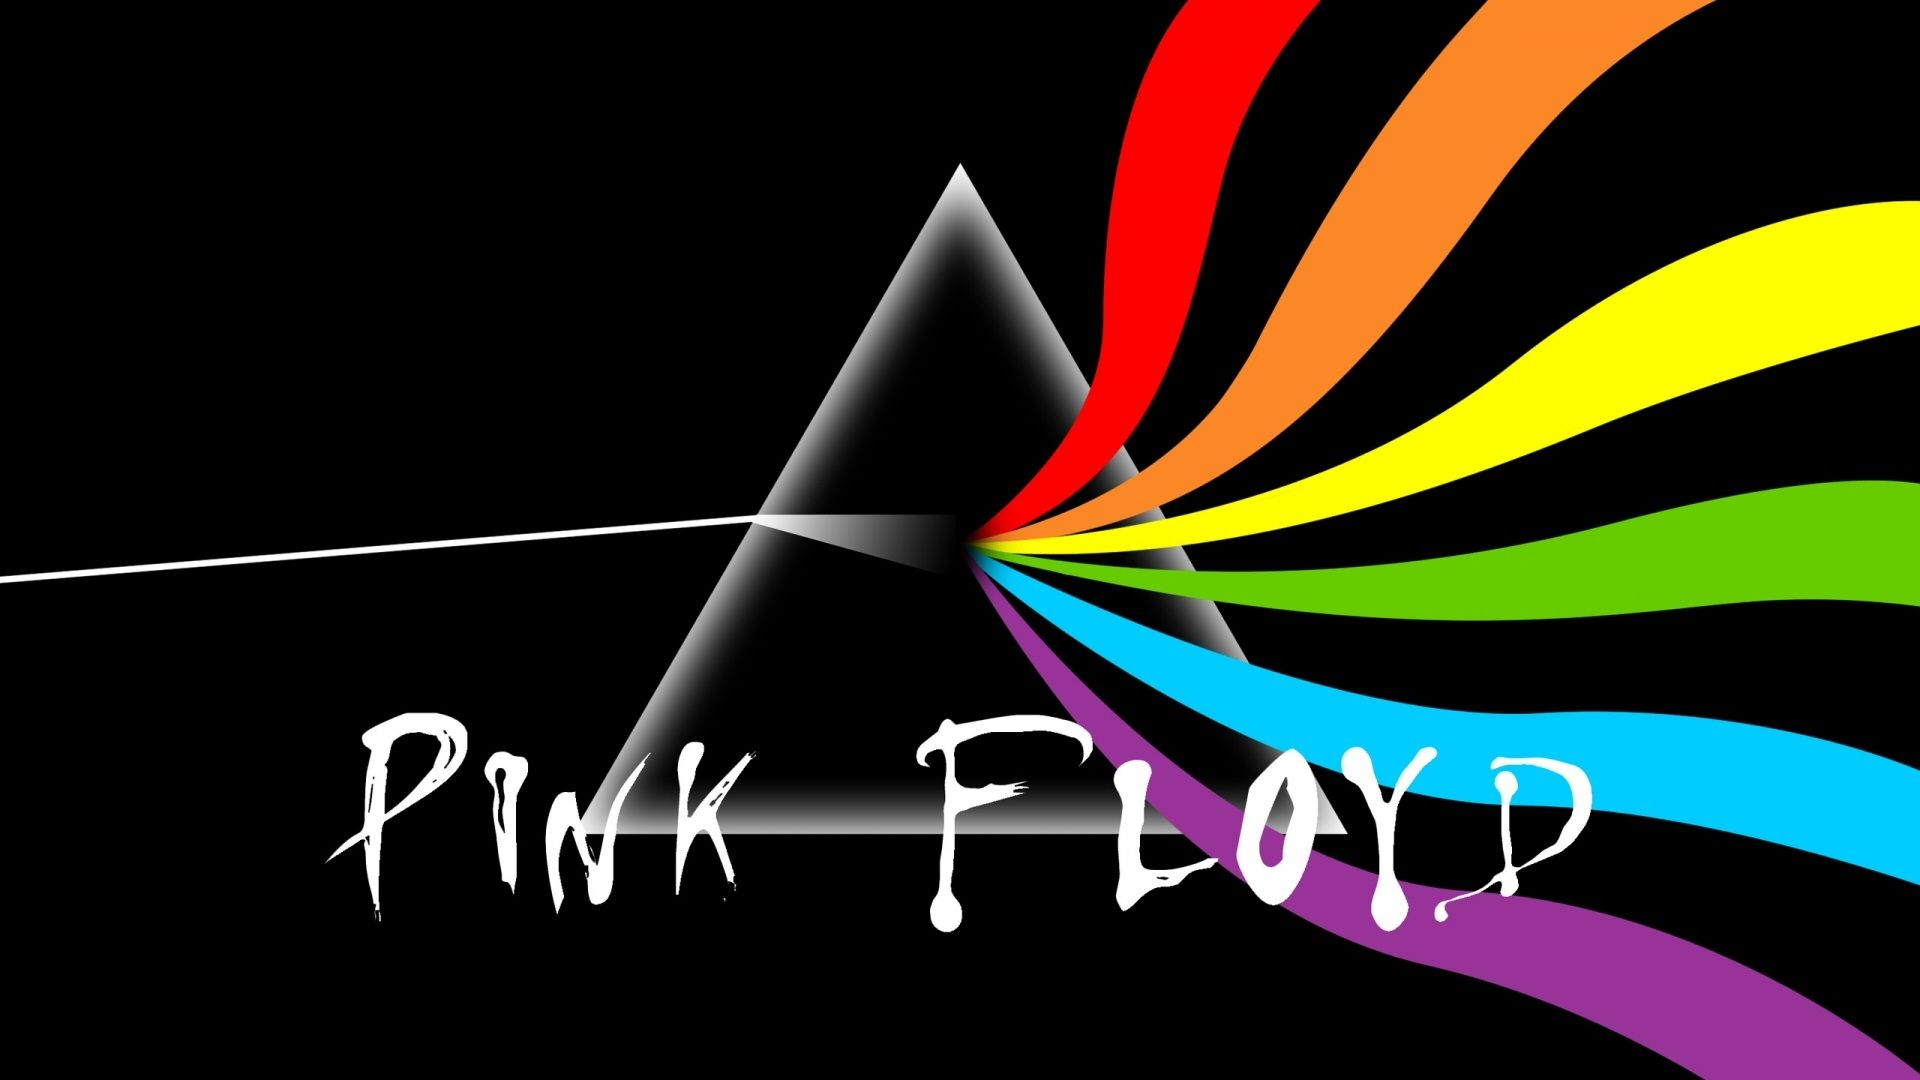 Wallpapers For > Pink Floyd Iphone Wallpaper The Wall